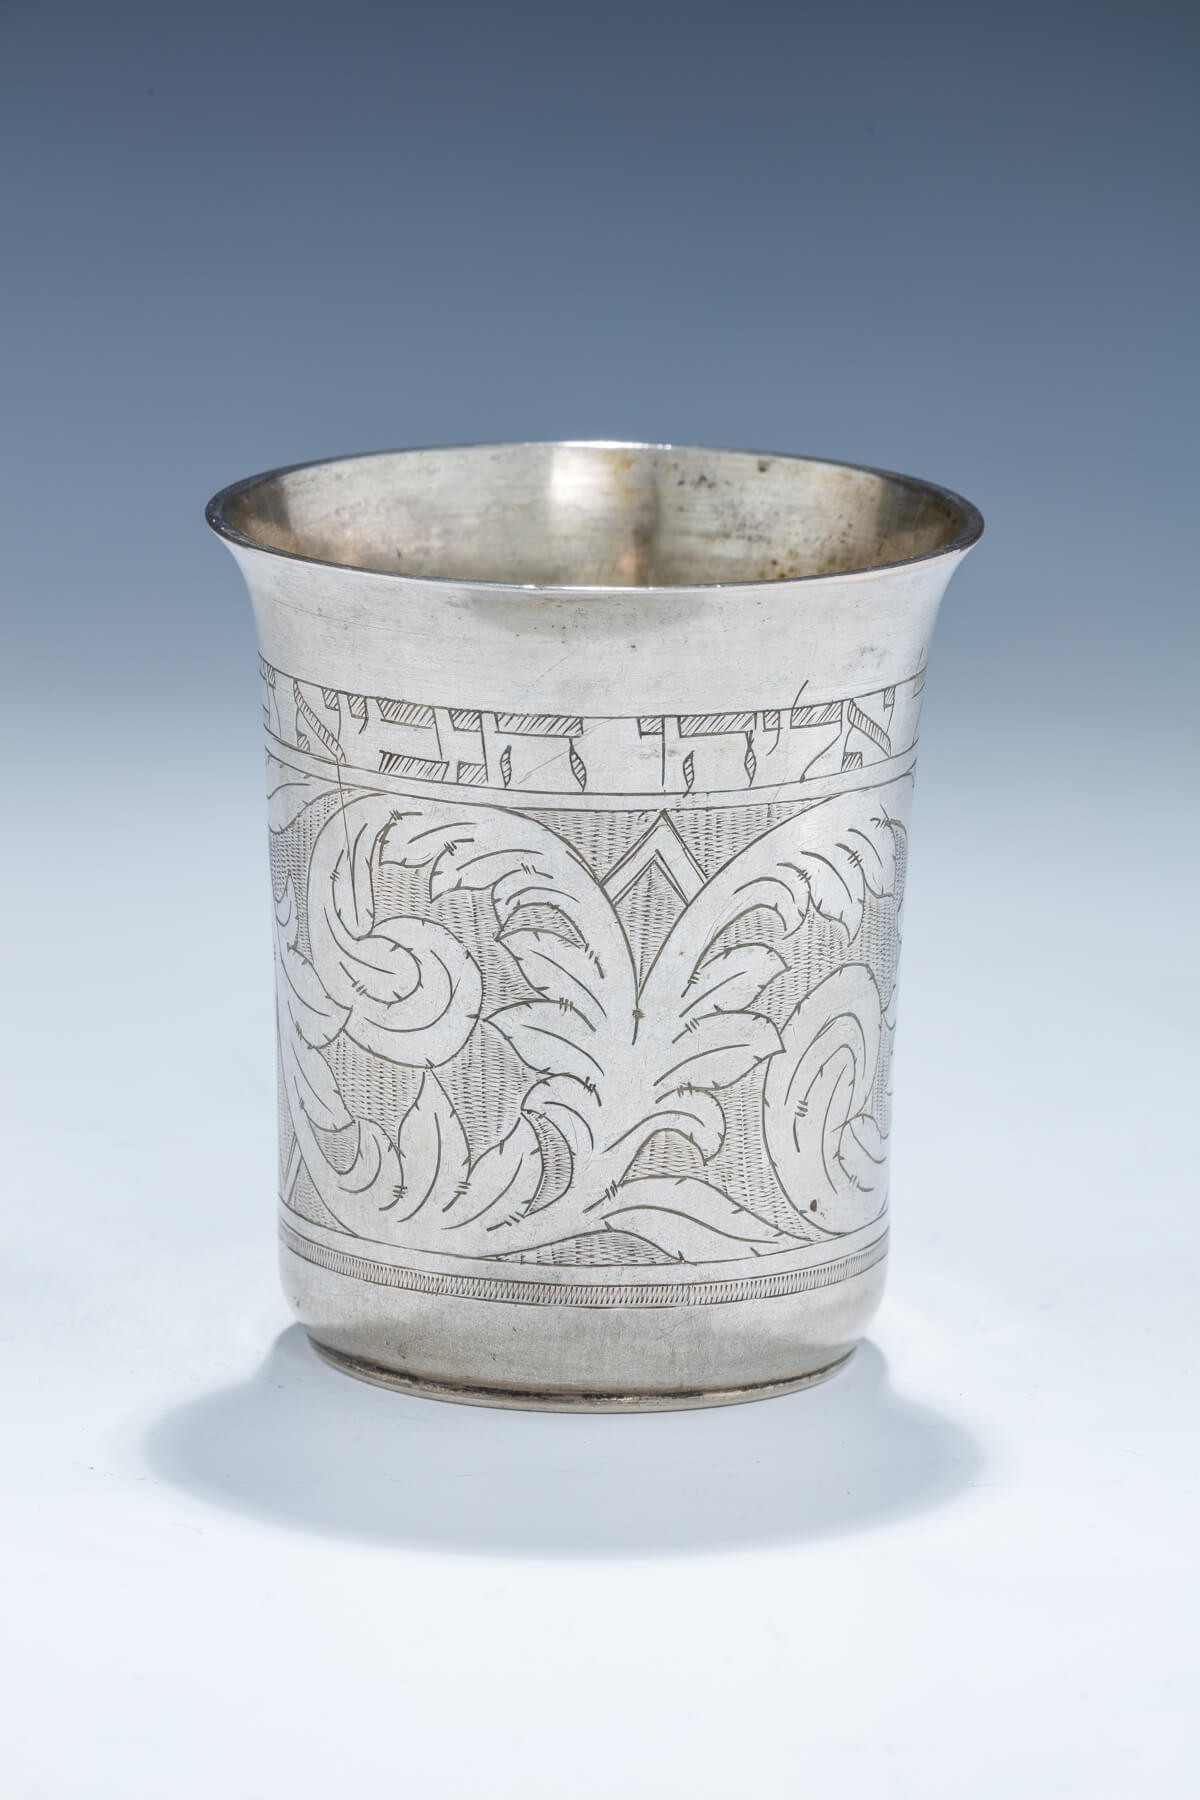 113. A Large And Rare Elijah Cup